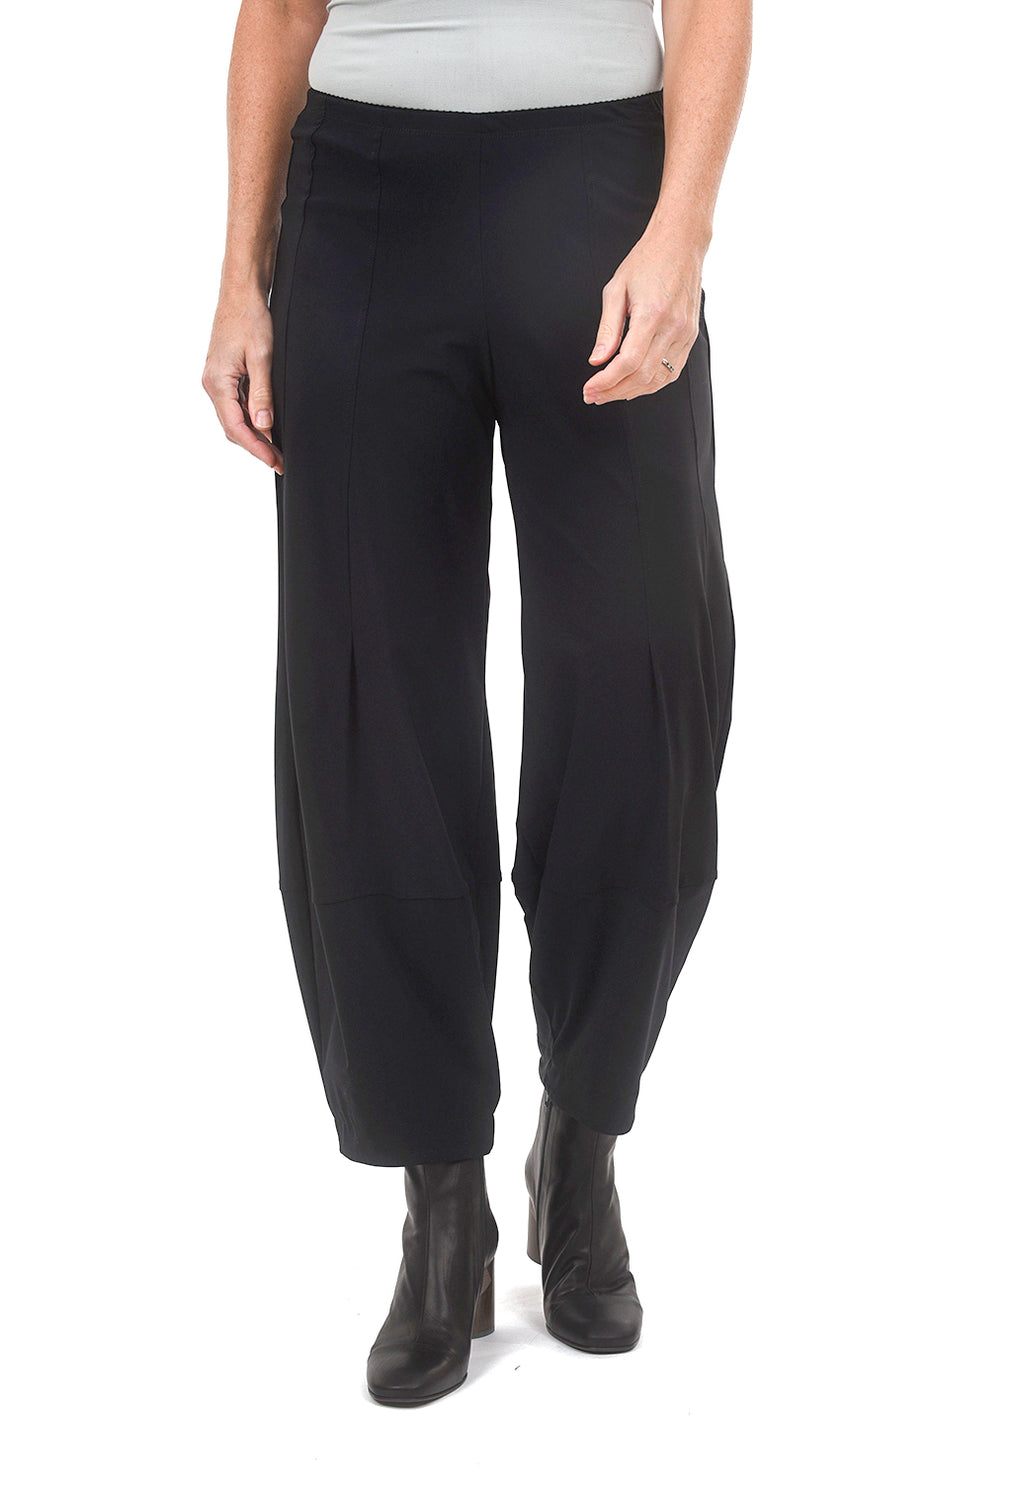 Porto JJ Buster Pants, Black